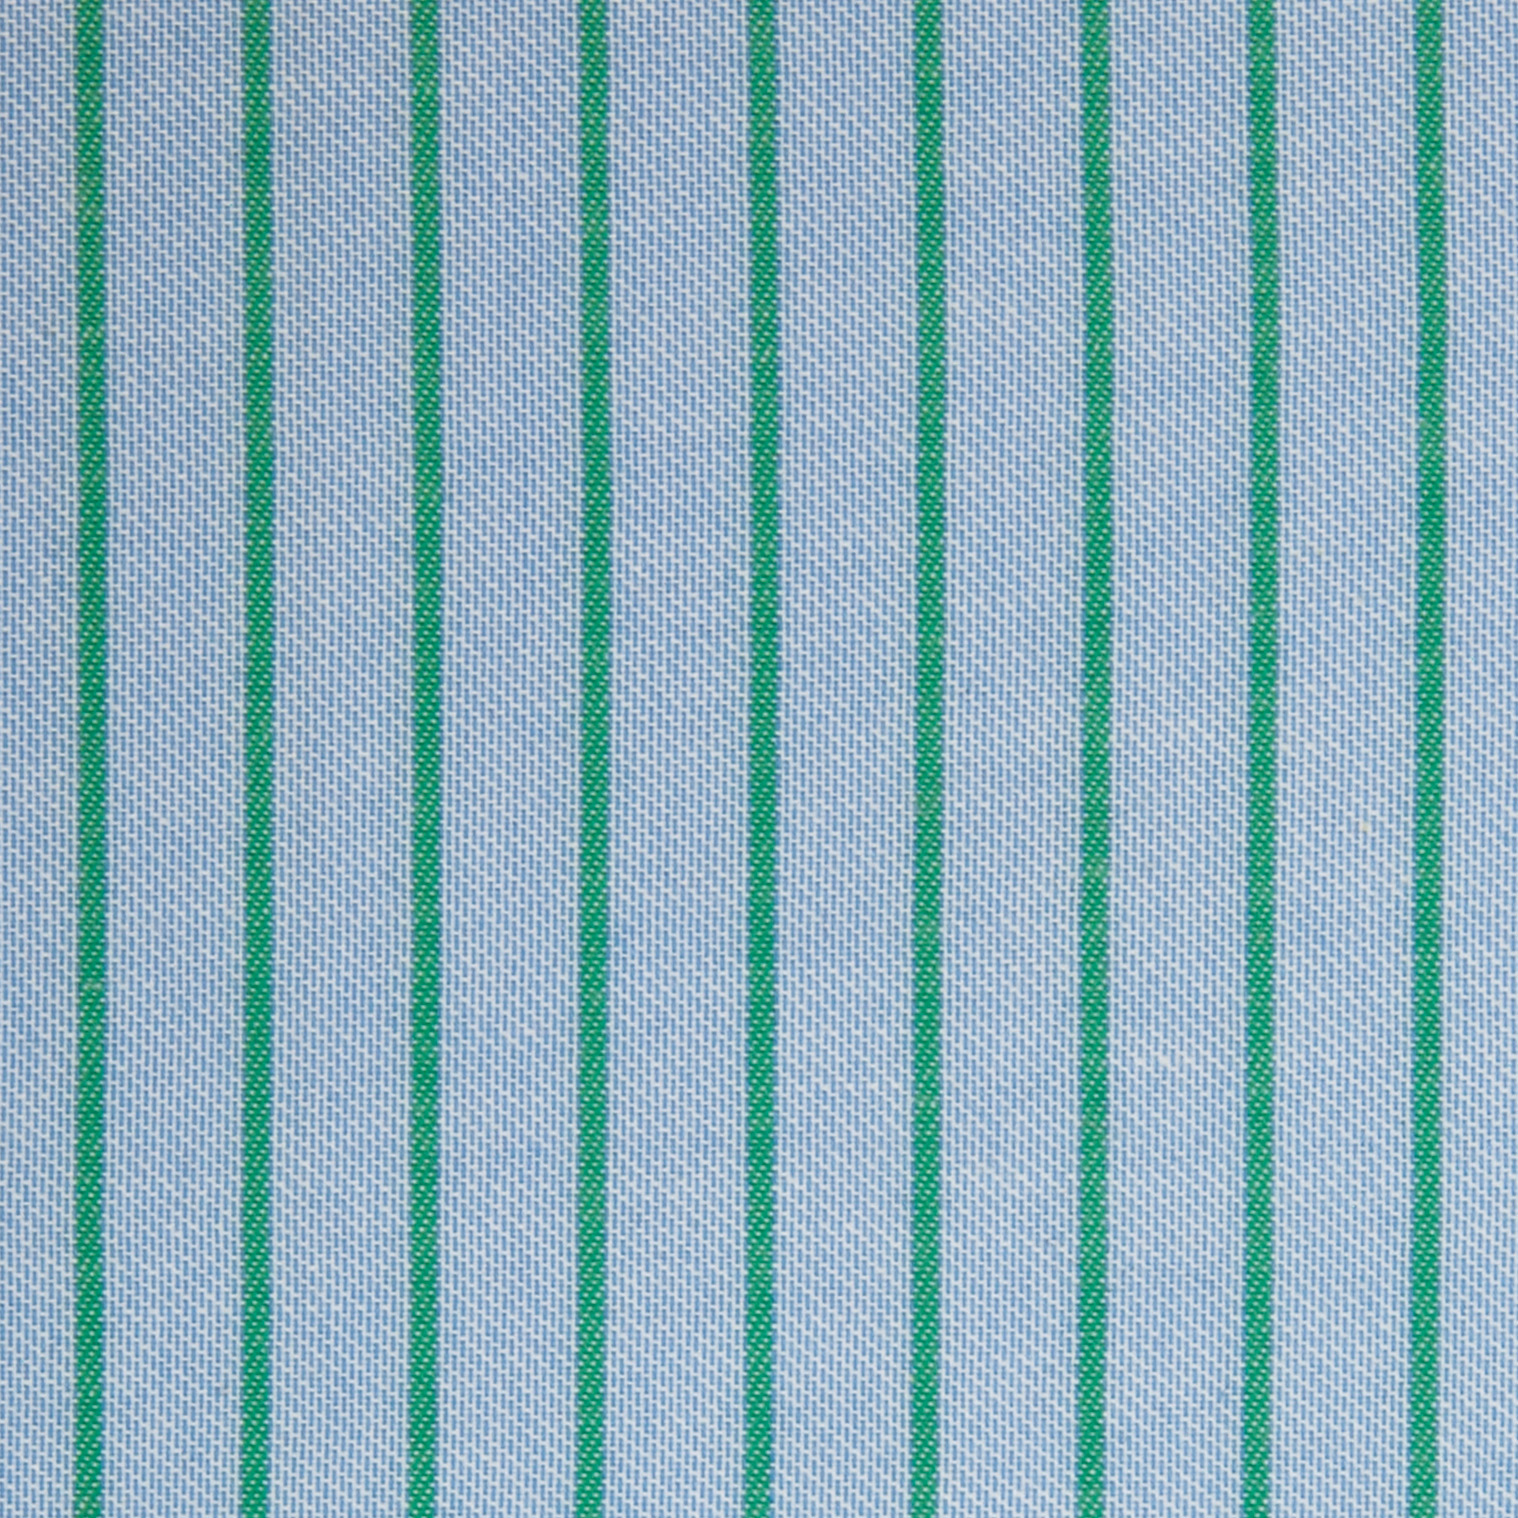 Buy tailor made shirts online - Arturo Collection - Green Stripe on Blue